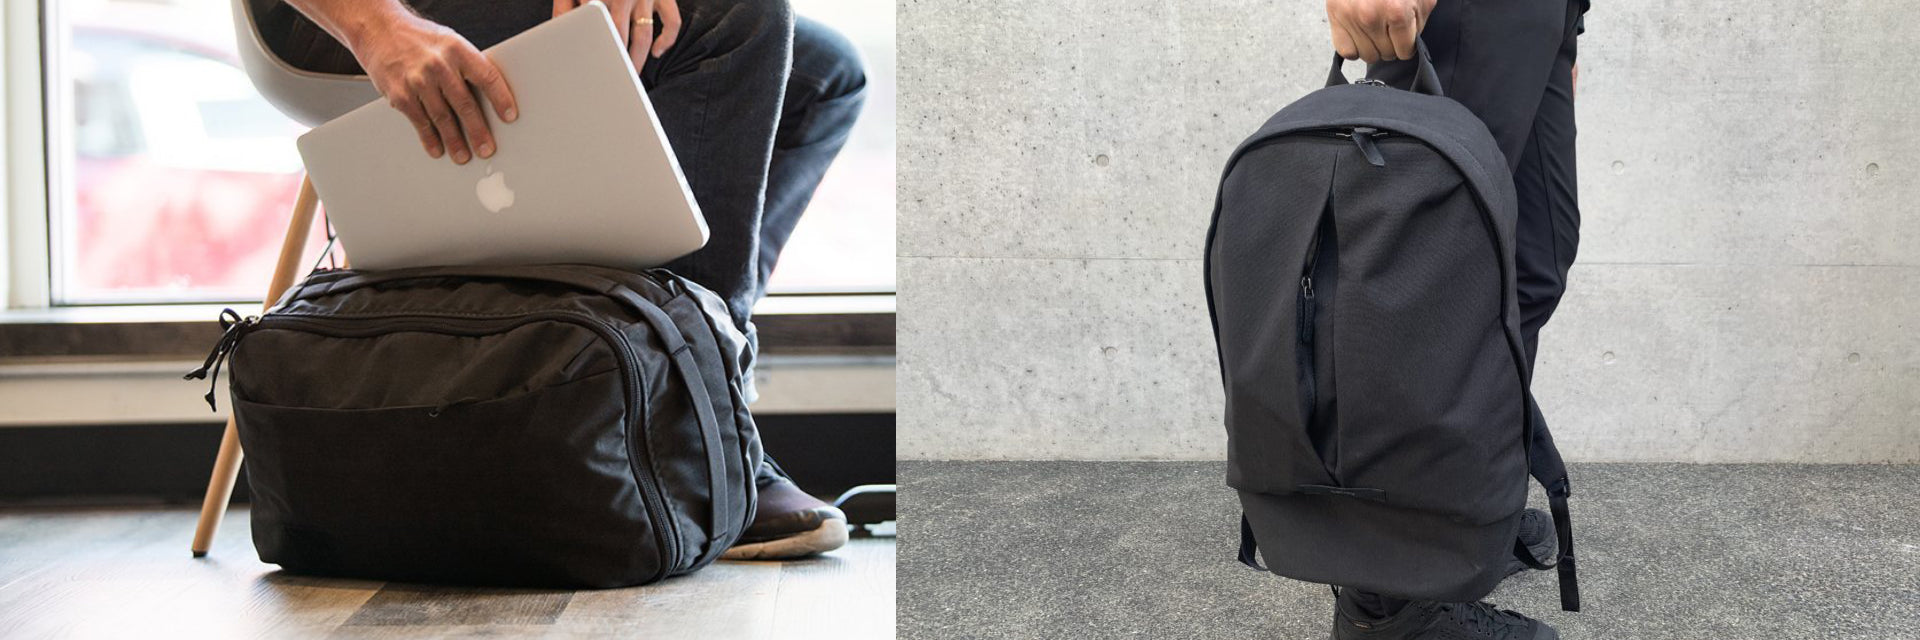 Evergoods CPL24 & Bellroy Classic Backpack Plus